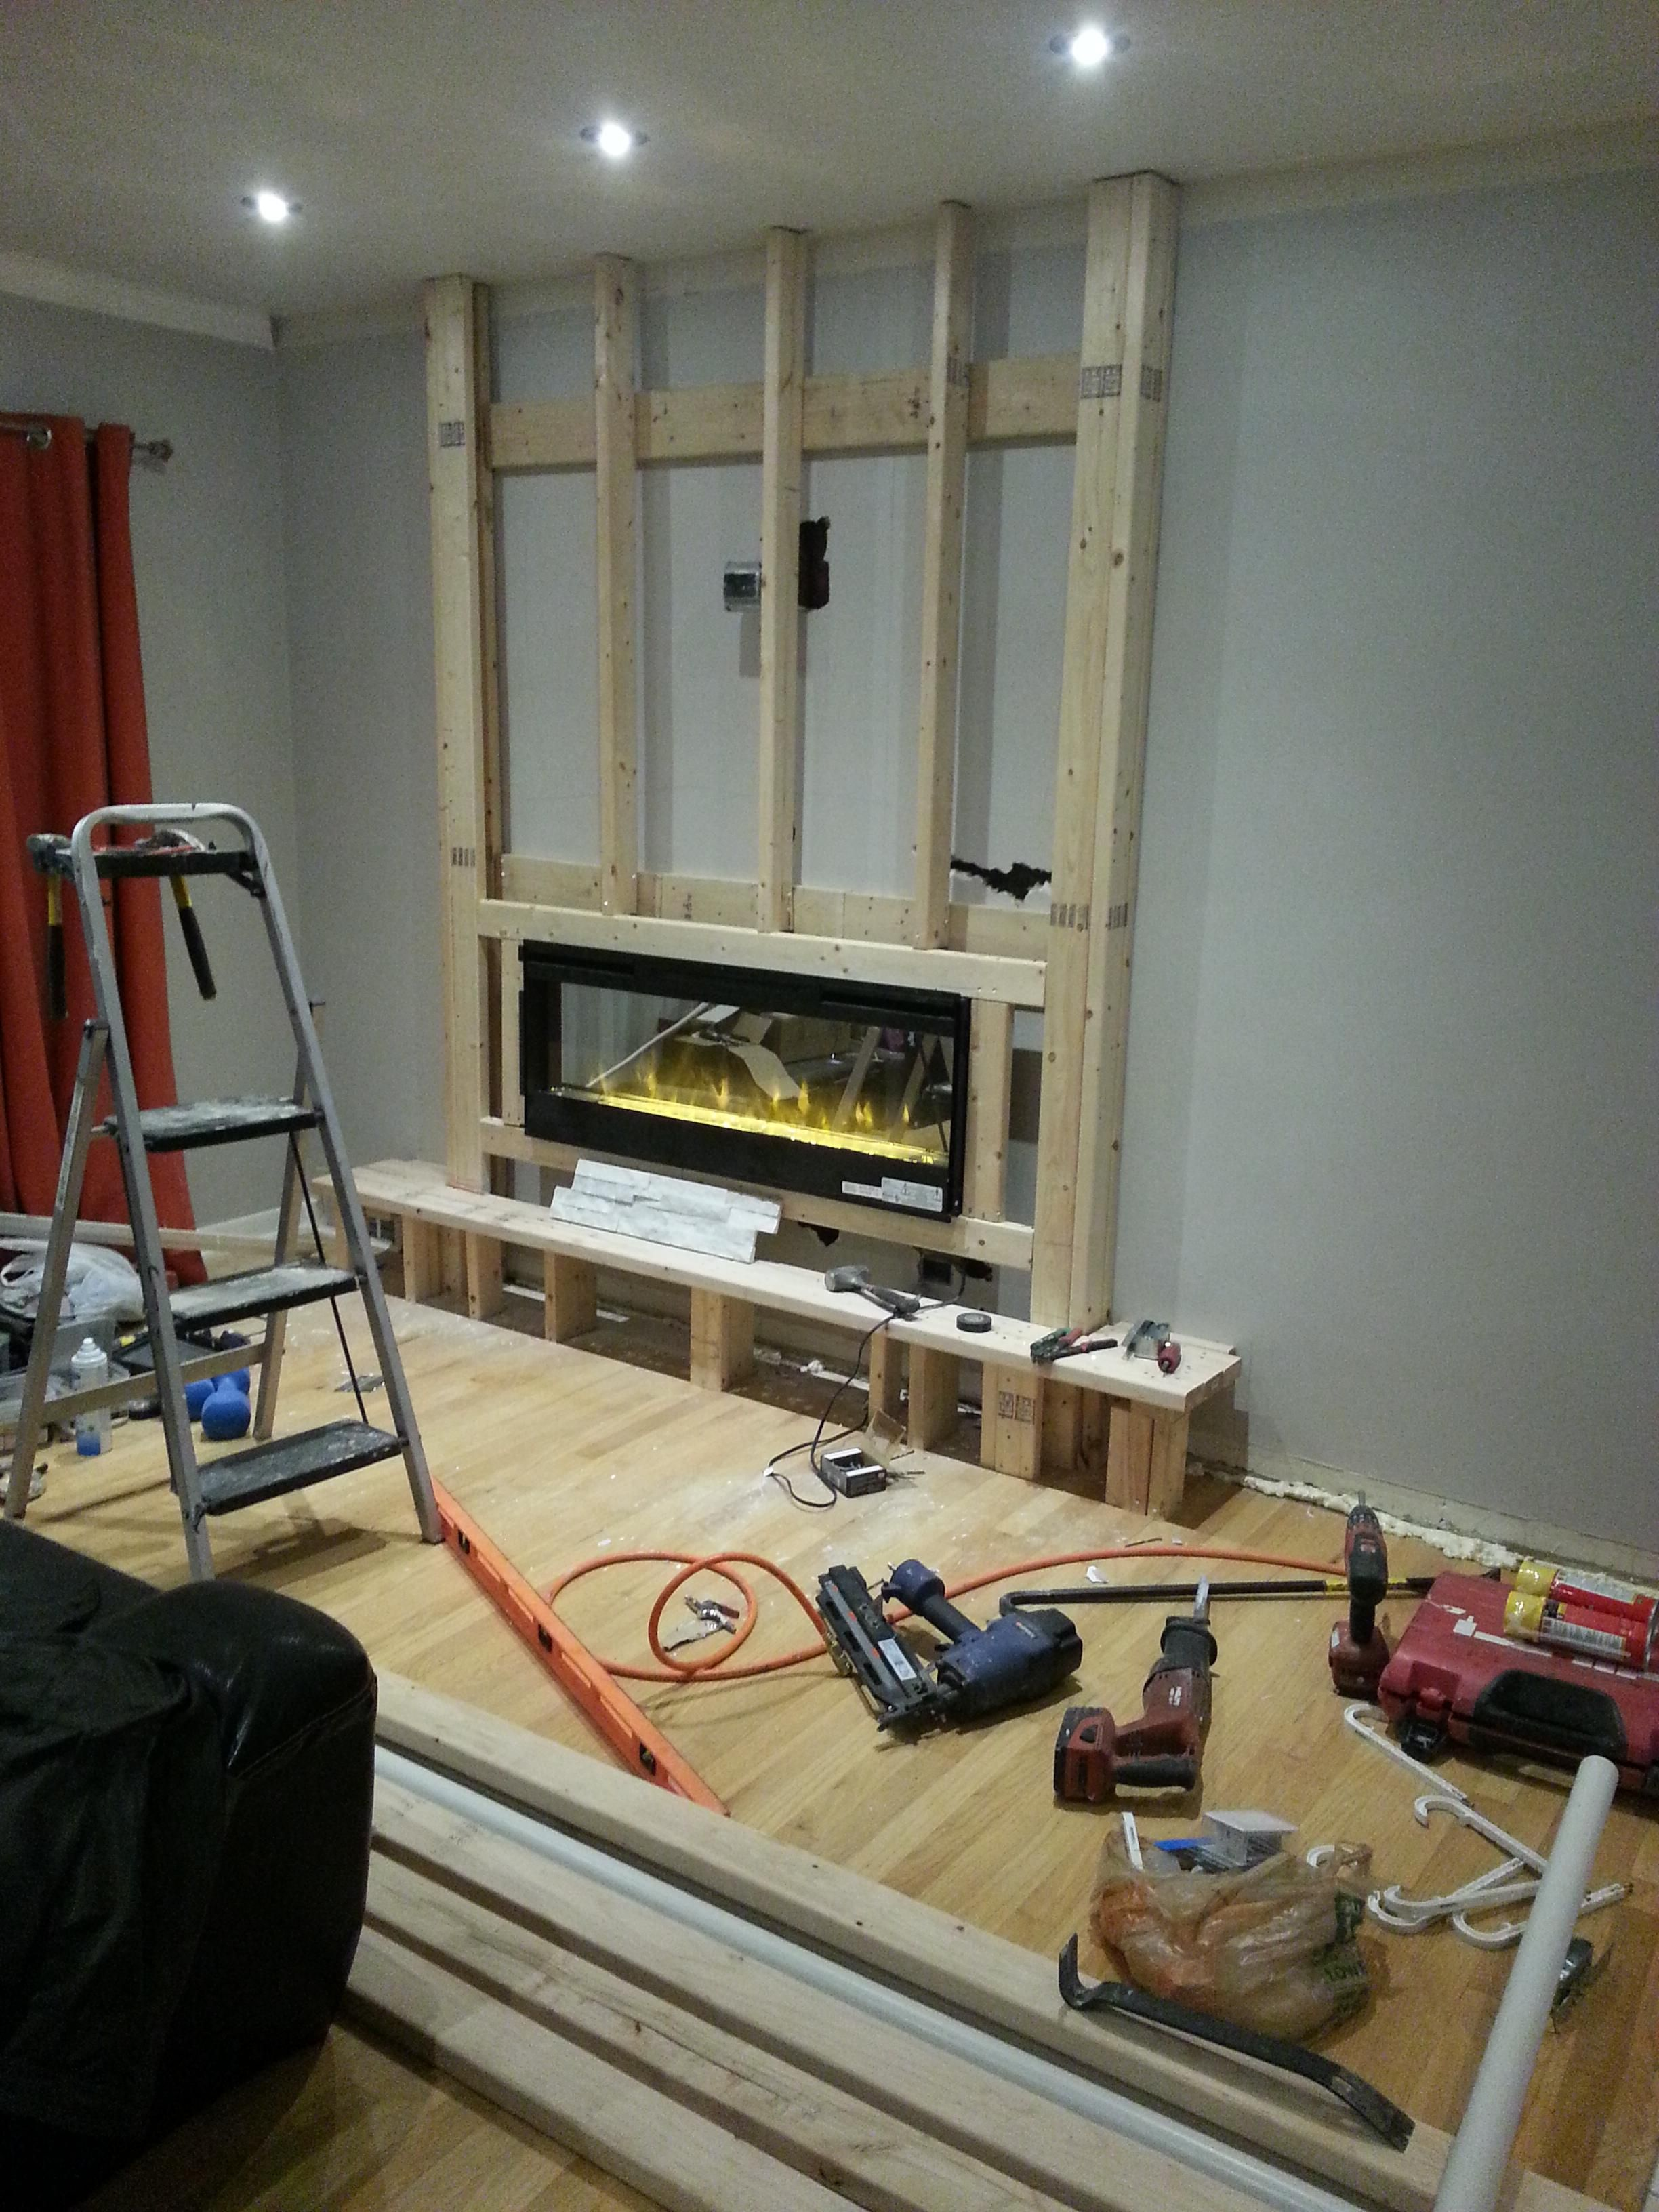 Design Wohnwand Fireplace | Build A Fireplace, Basement Remodeling, Home